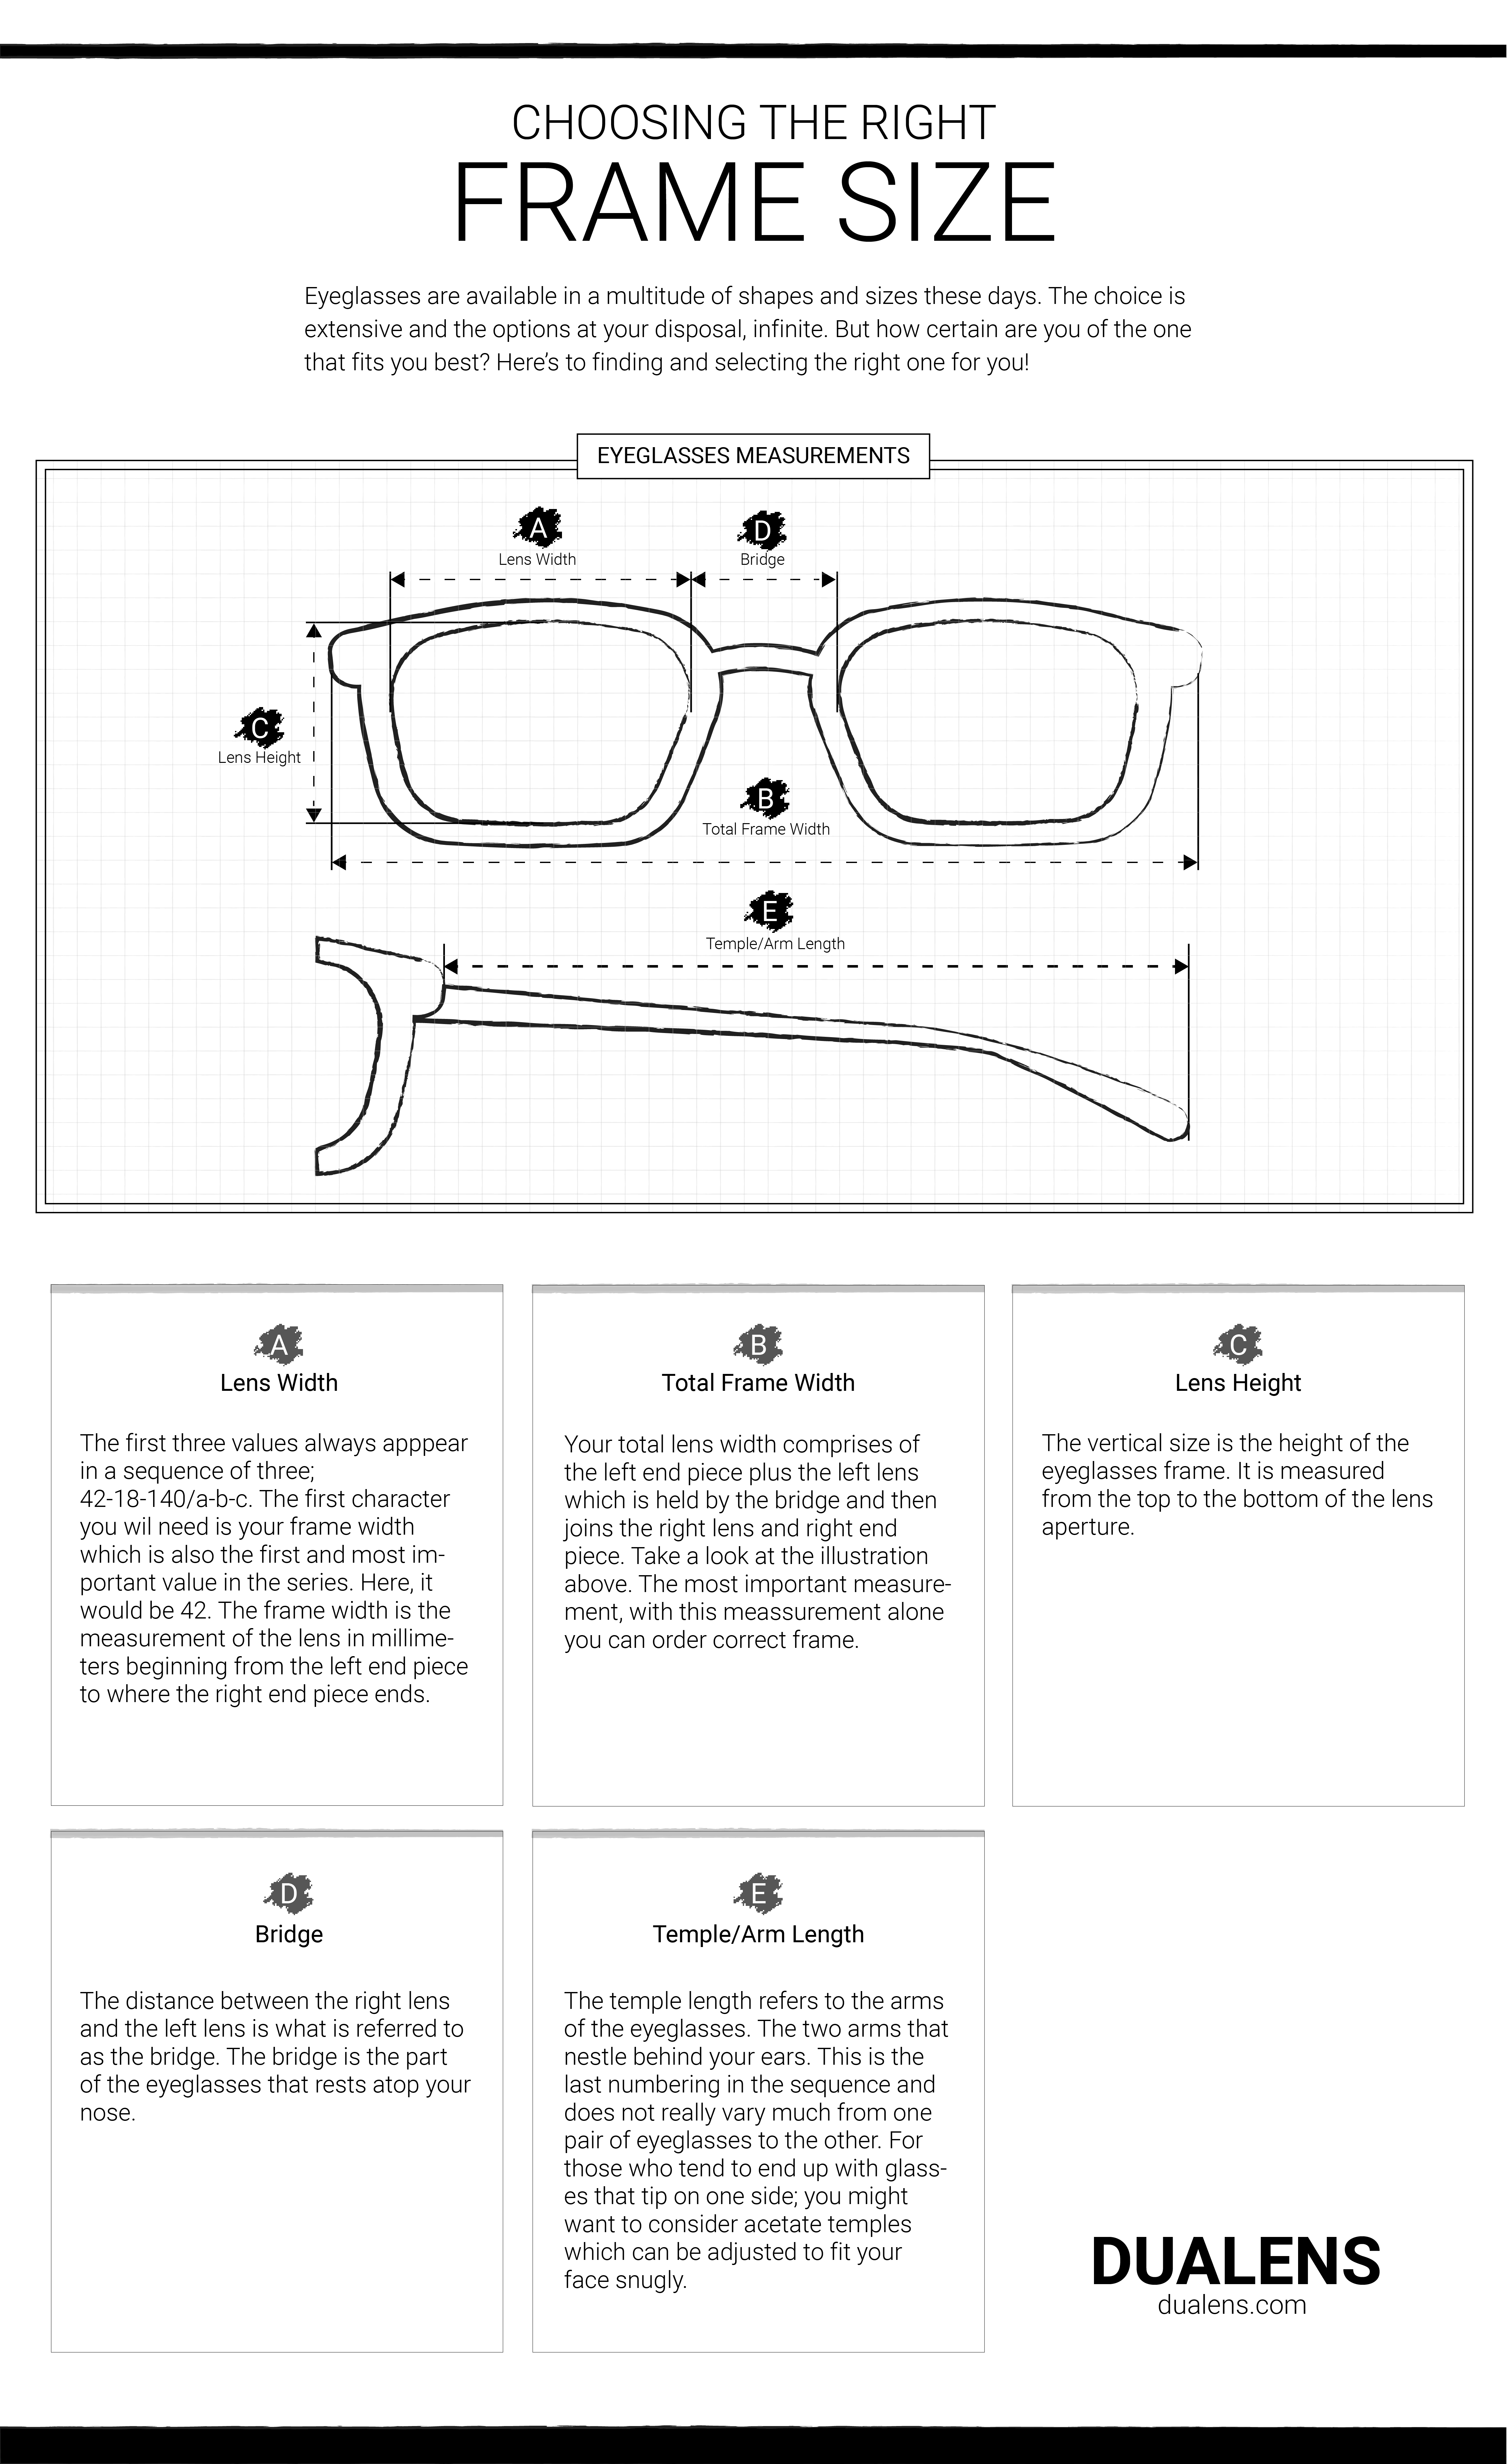 Choosing The Right Frame Size By Knowing How The